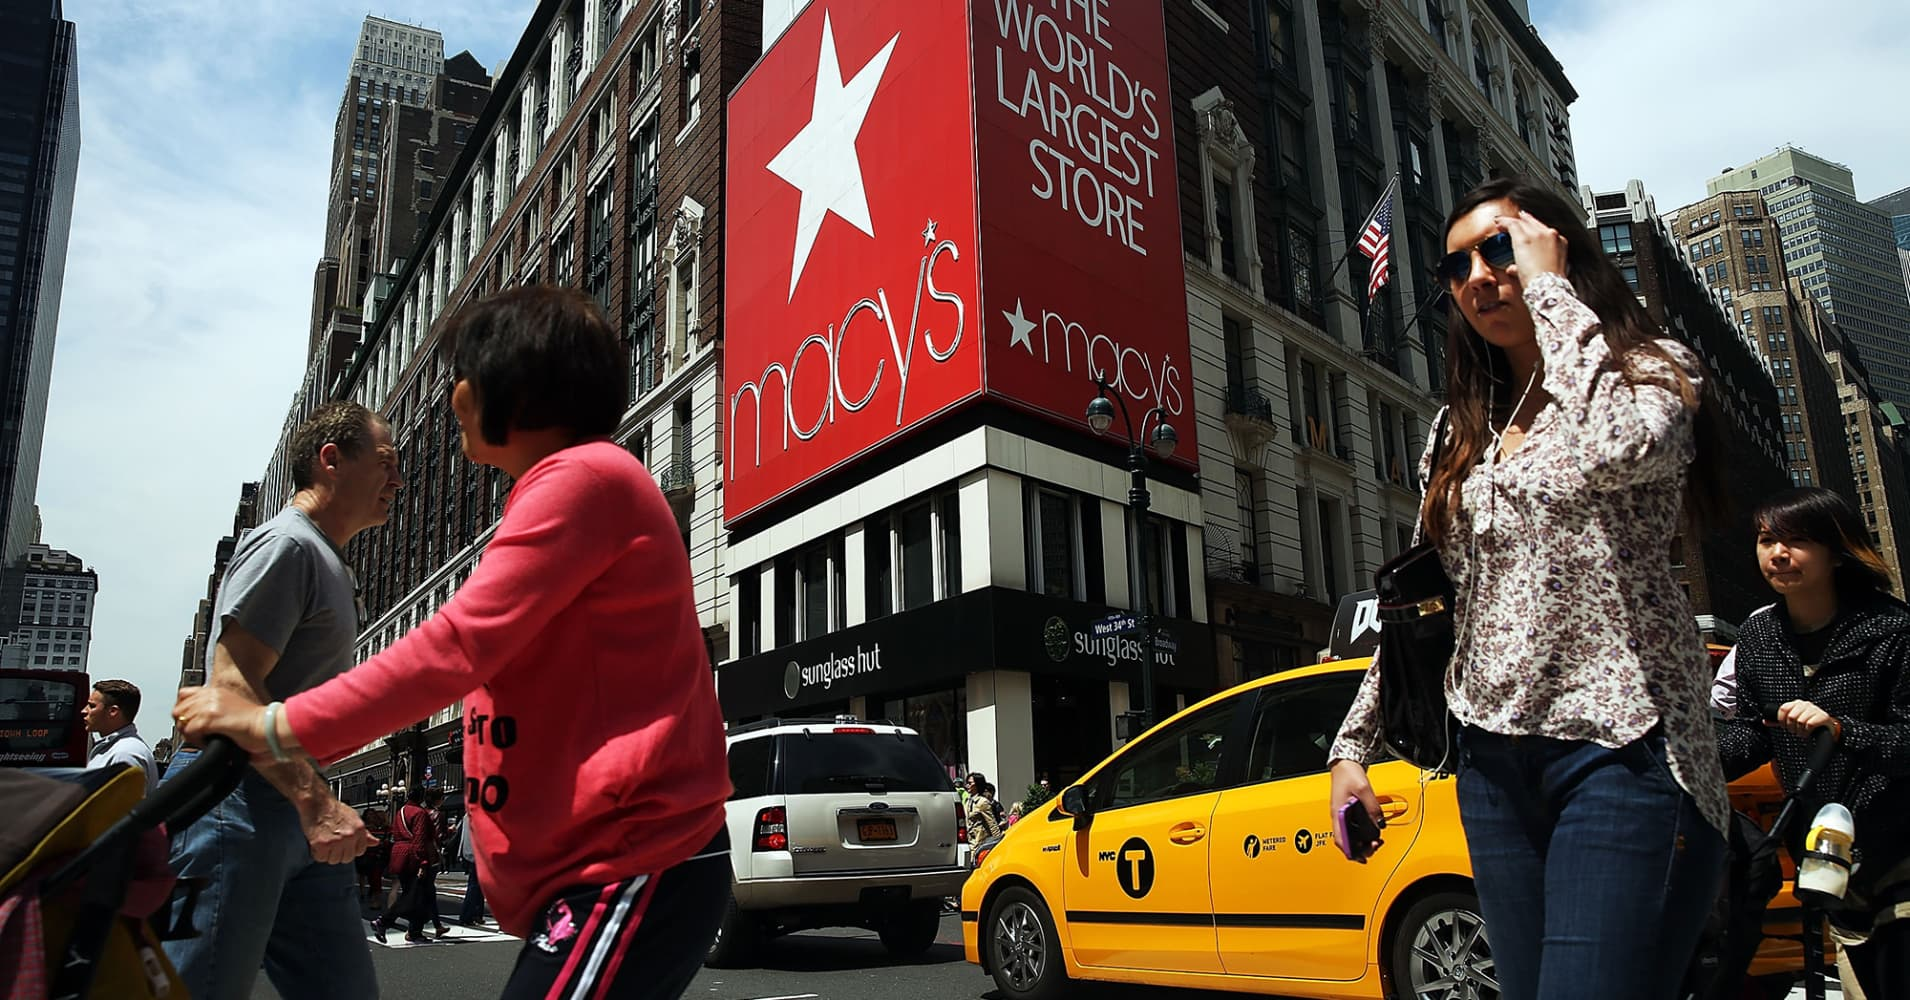 Macy's is testing smaller stores to save money